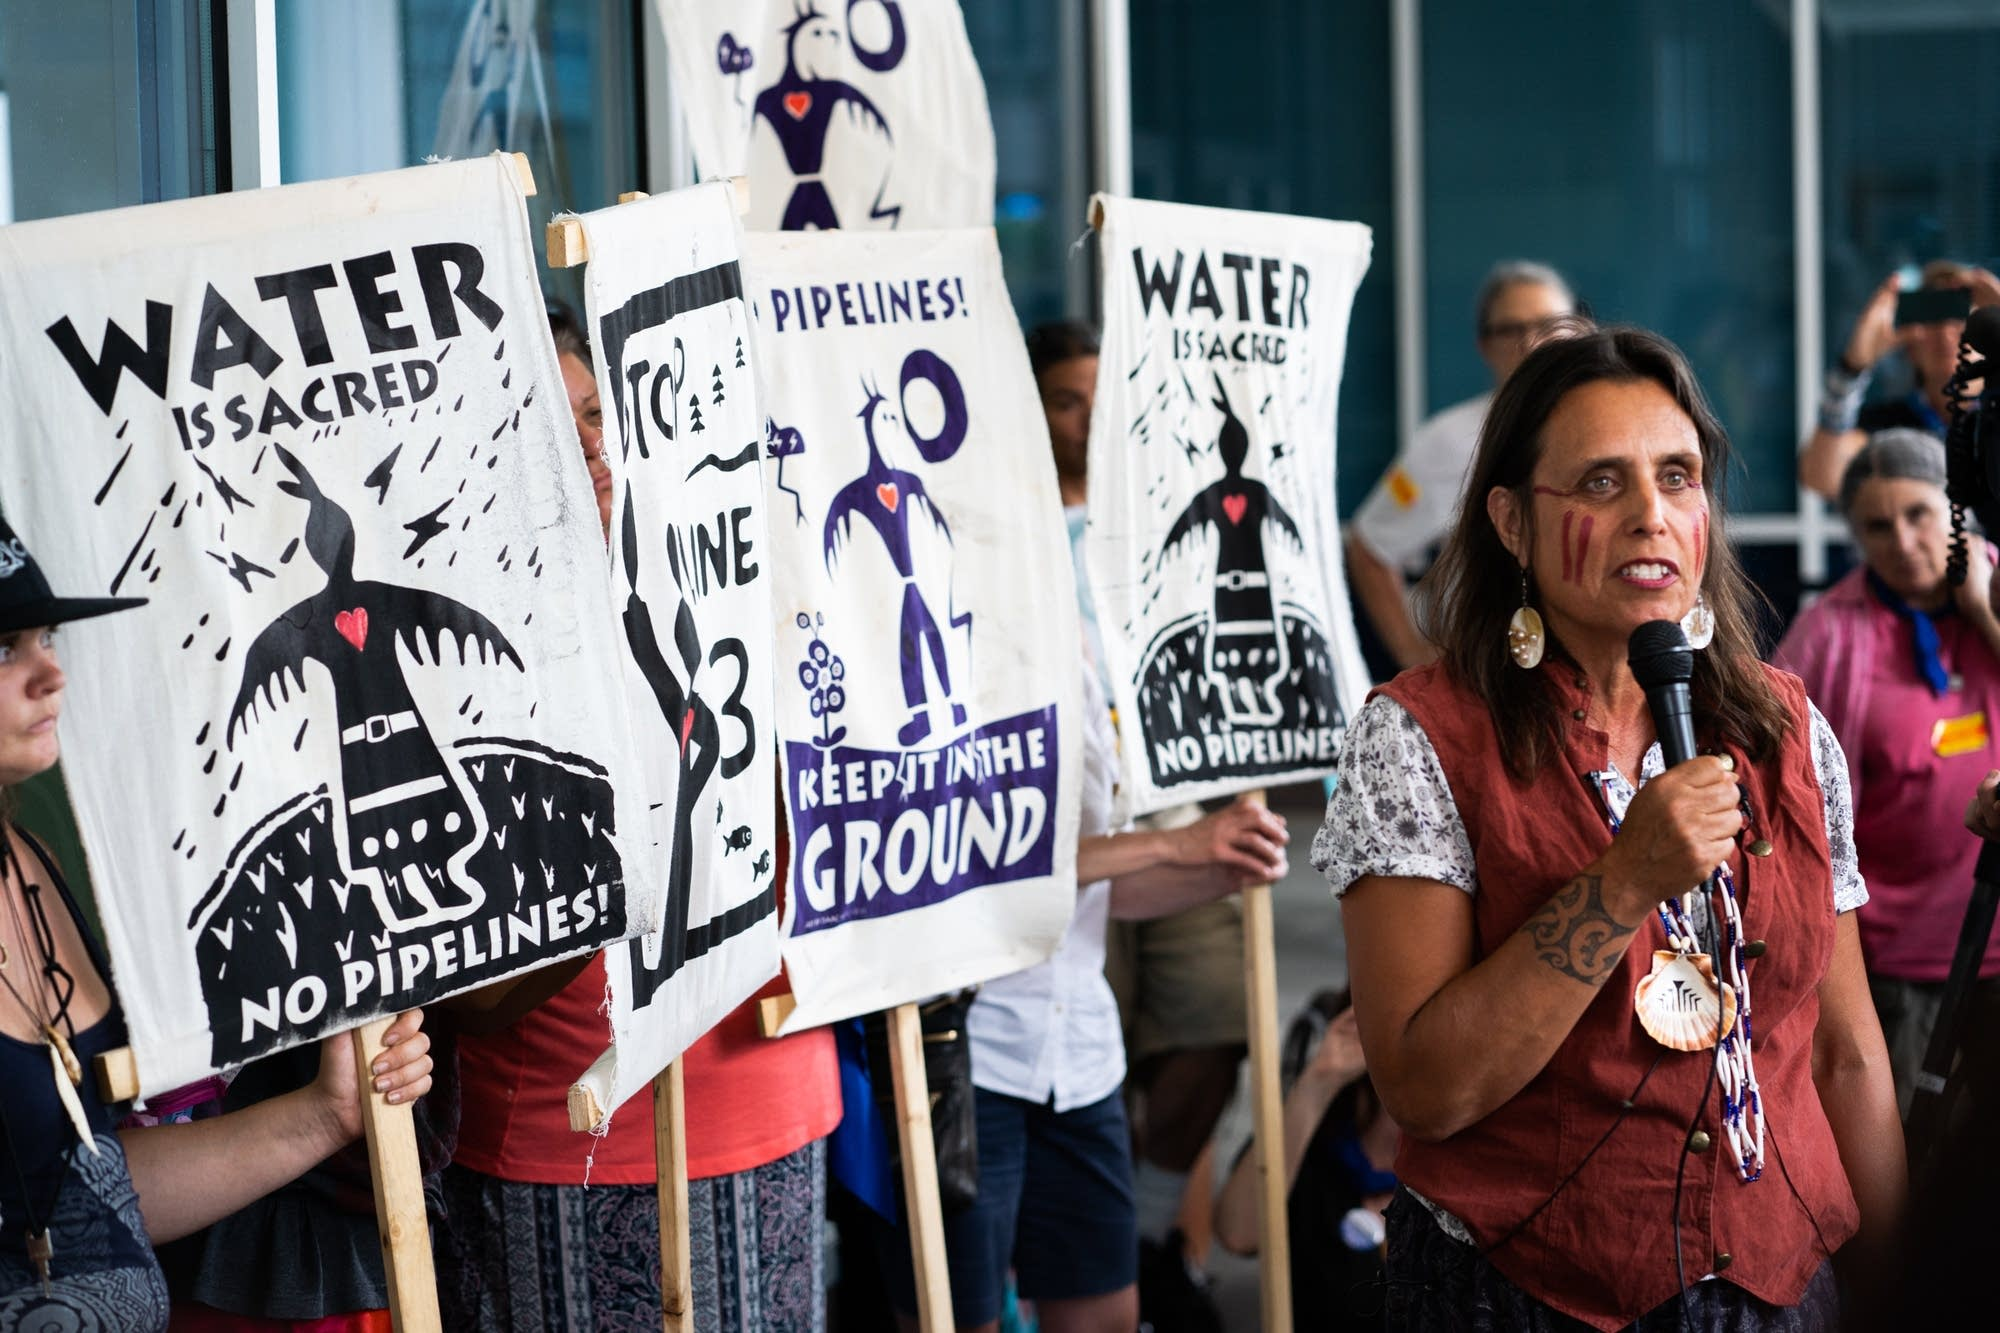 Activist Winona LaDuke speaks at a press conference.